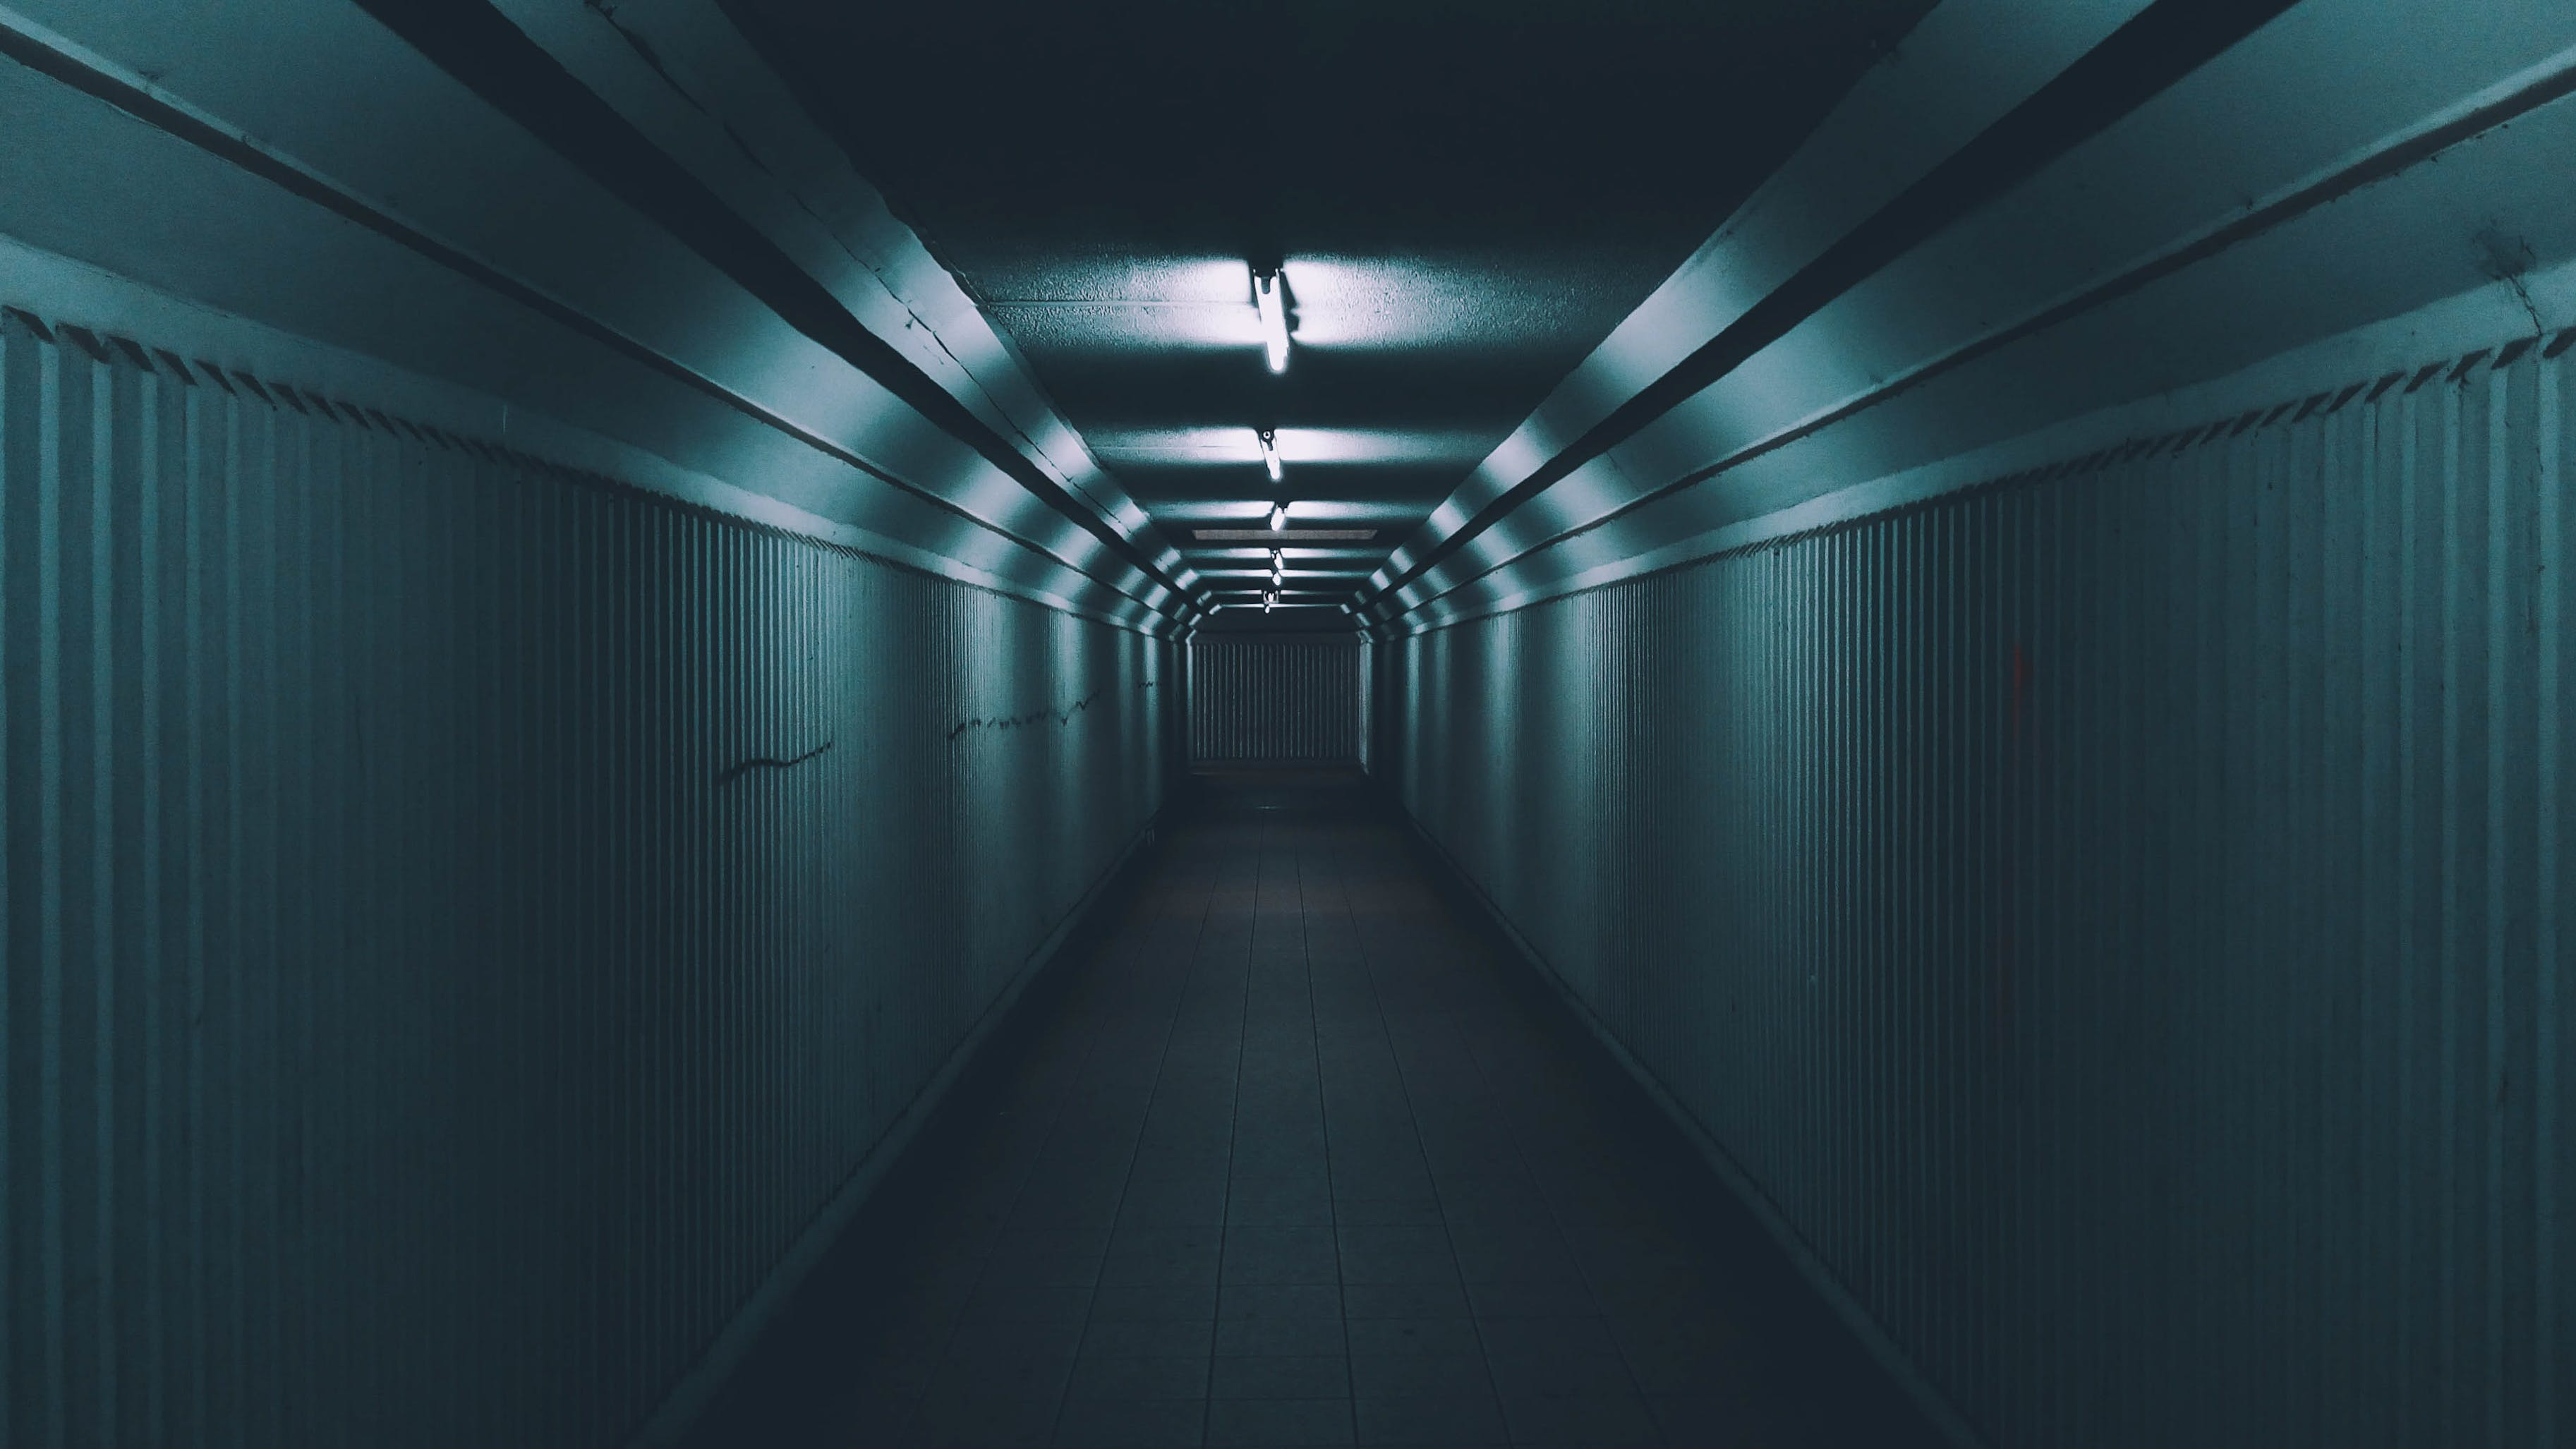 Empty Hallway with Lights Turned on